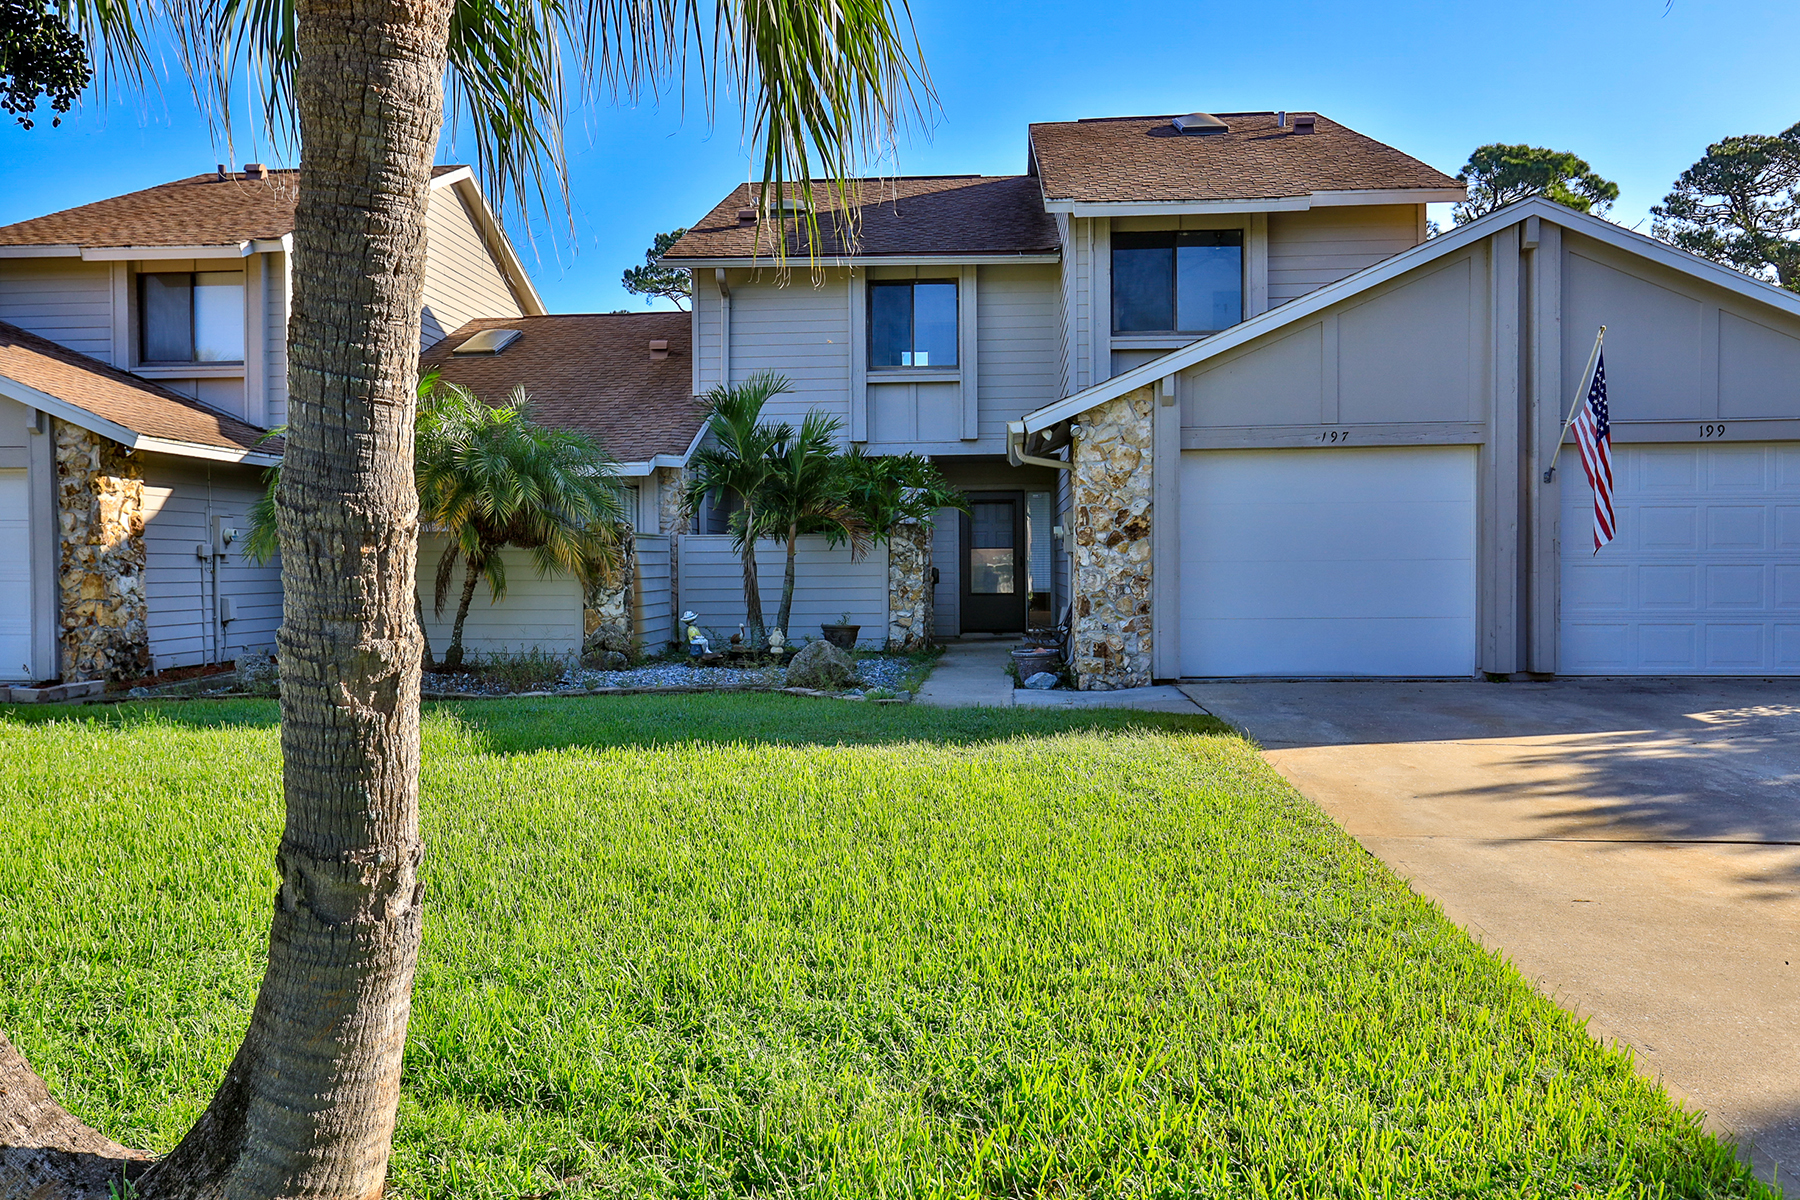 townhouses for Sale at Daytona Beach 197 Surf Scooter Dr, Daytona Beach, Florida 32119 United States